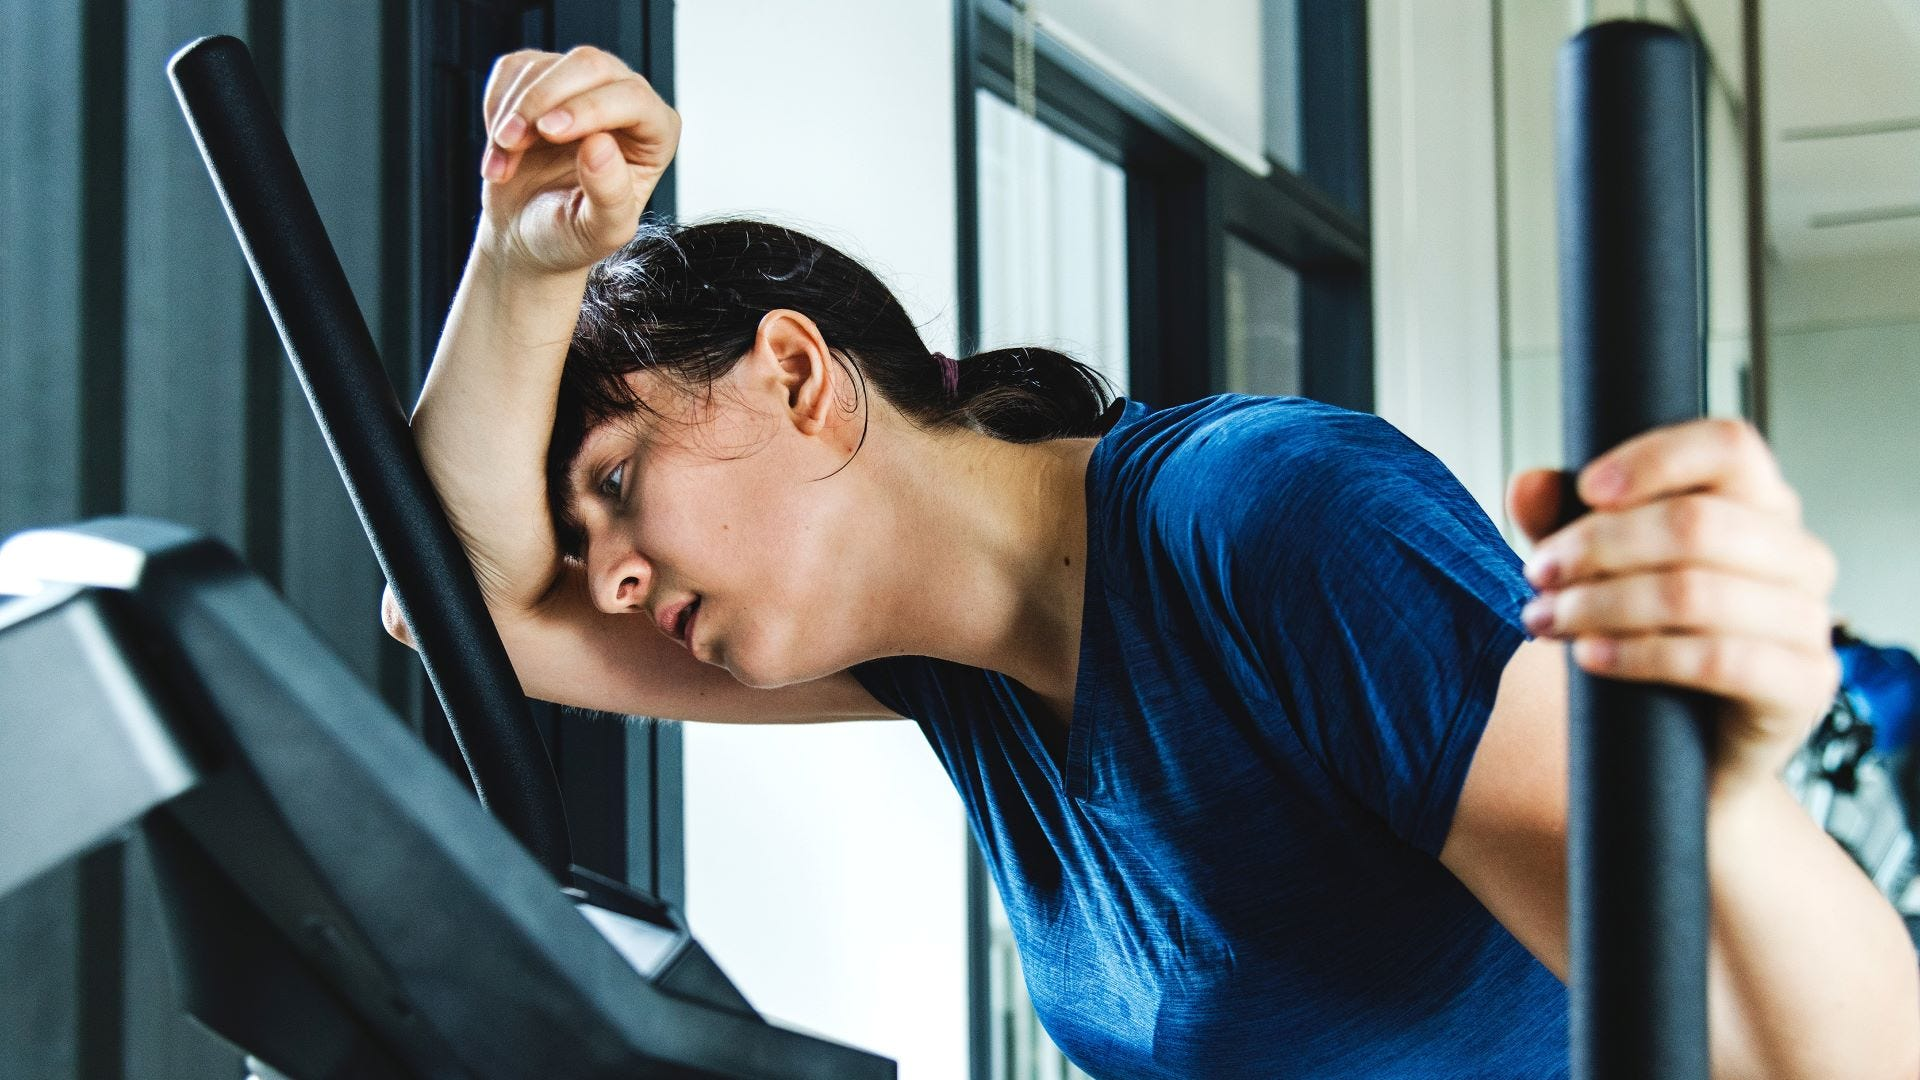 A woman who looks exhausted on an elliptical machine at a gym.